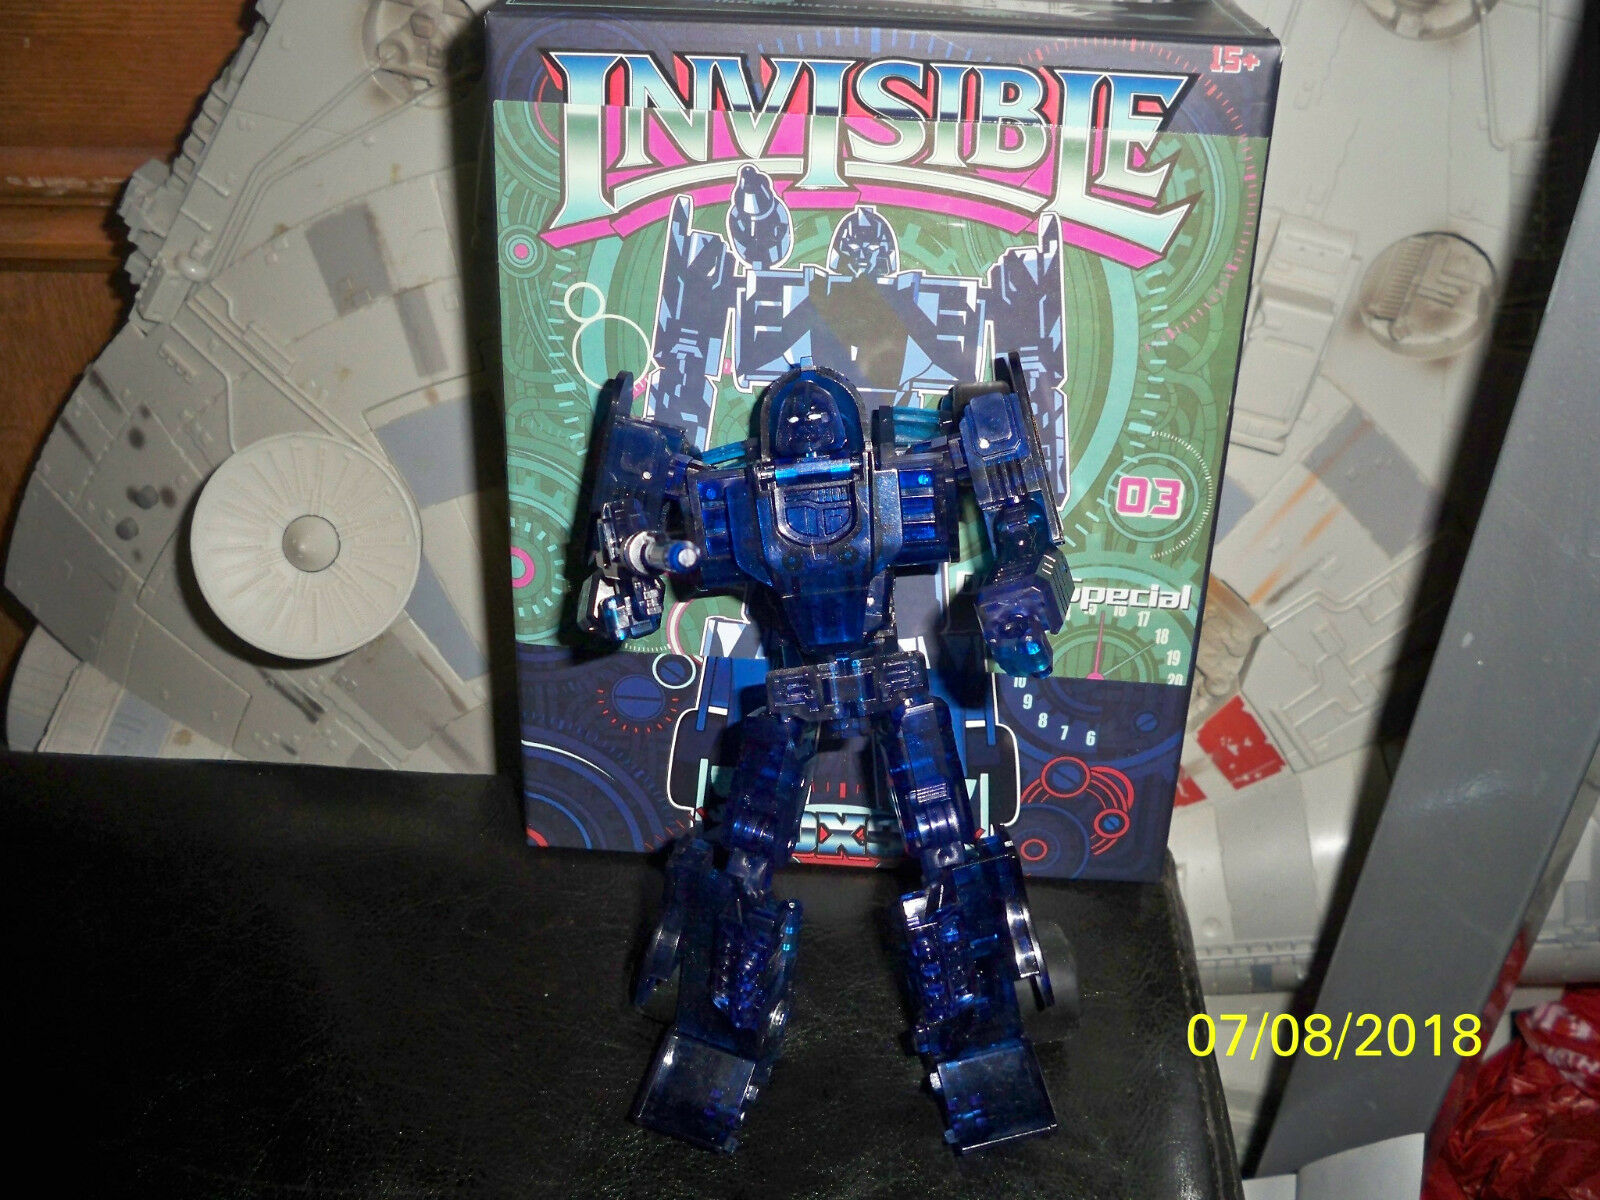 DX9 Invisible Clear blu limited edition